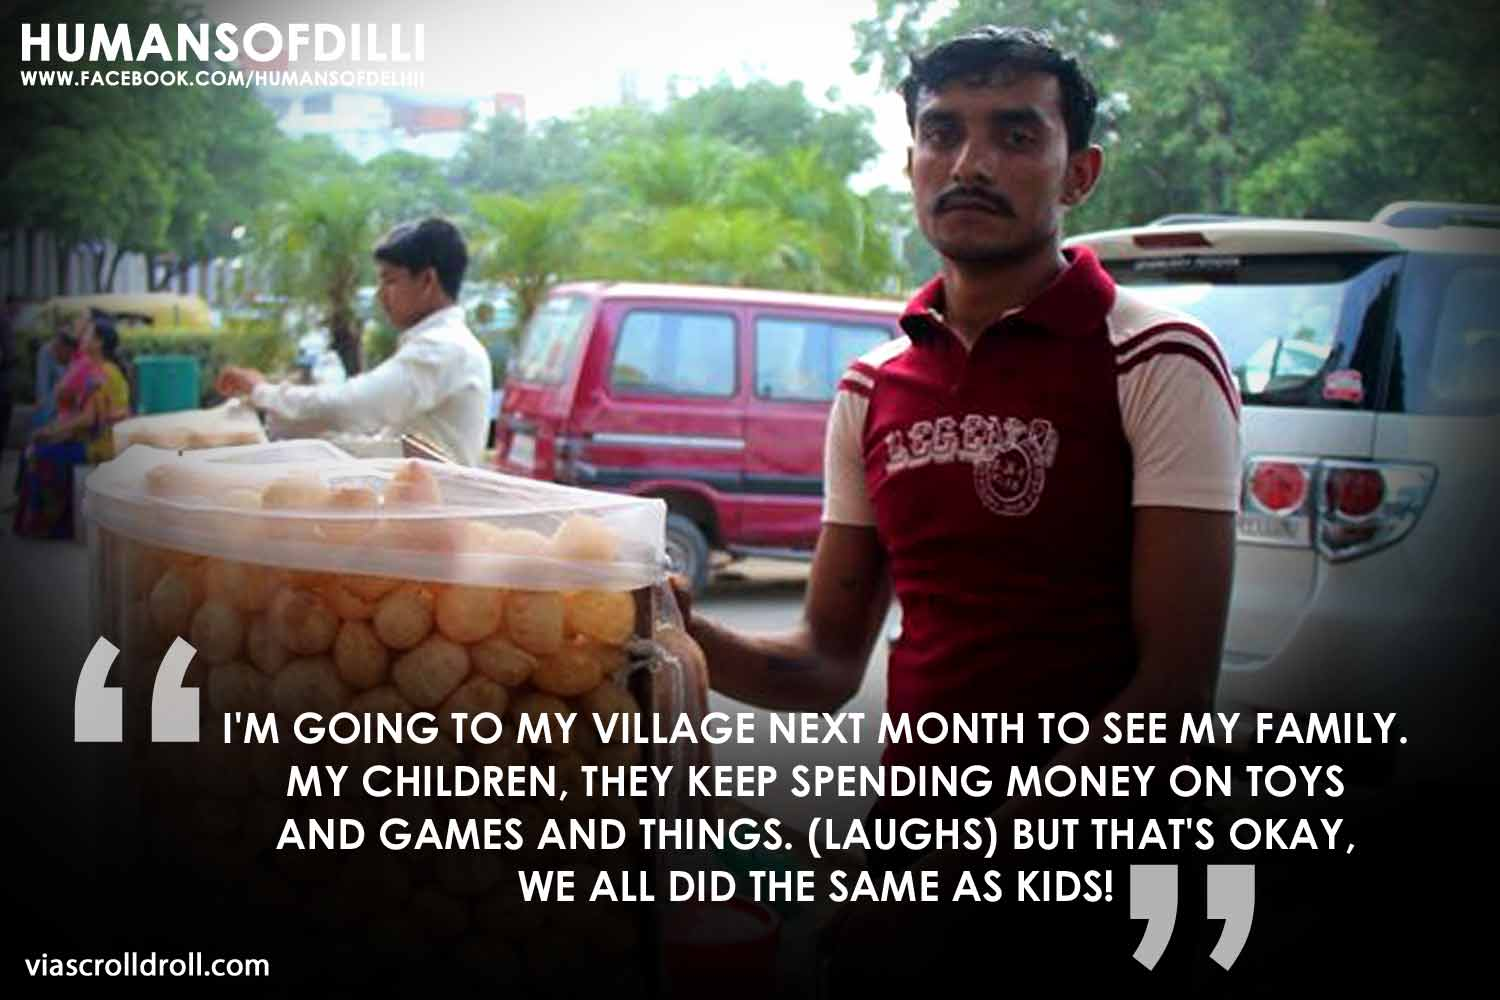 Humans of Dilli (7)